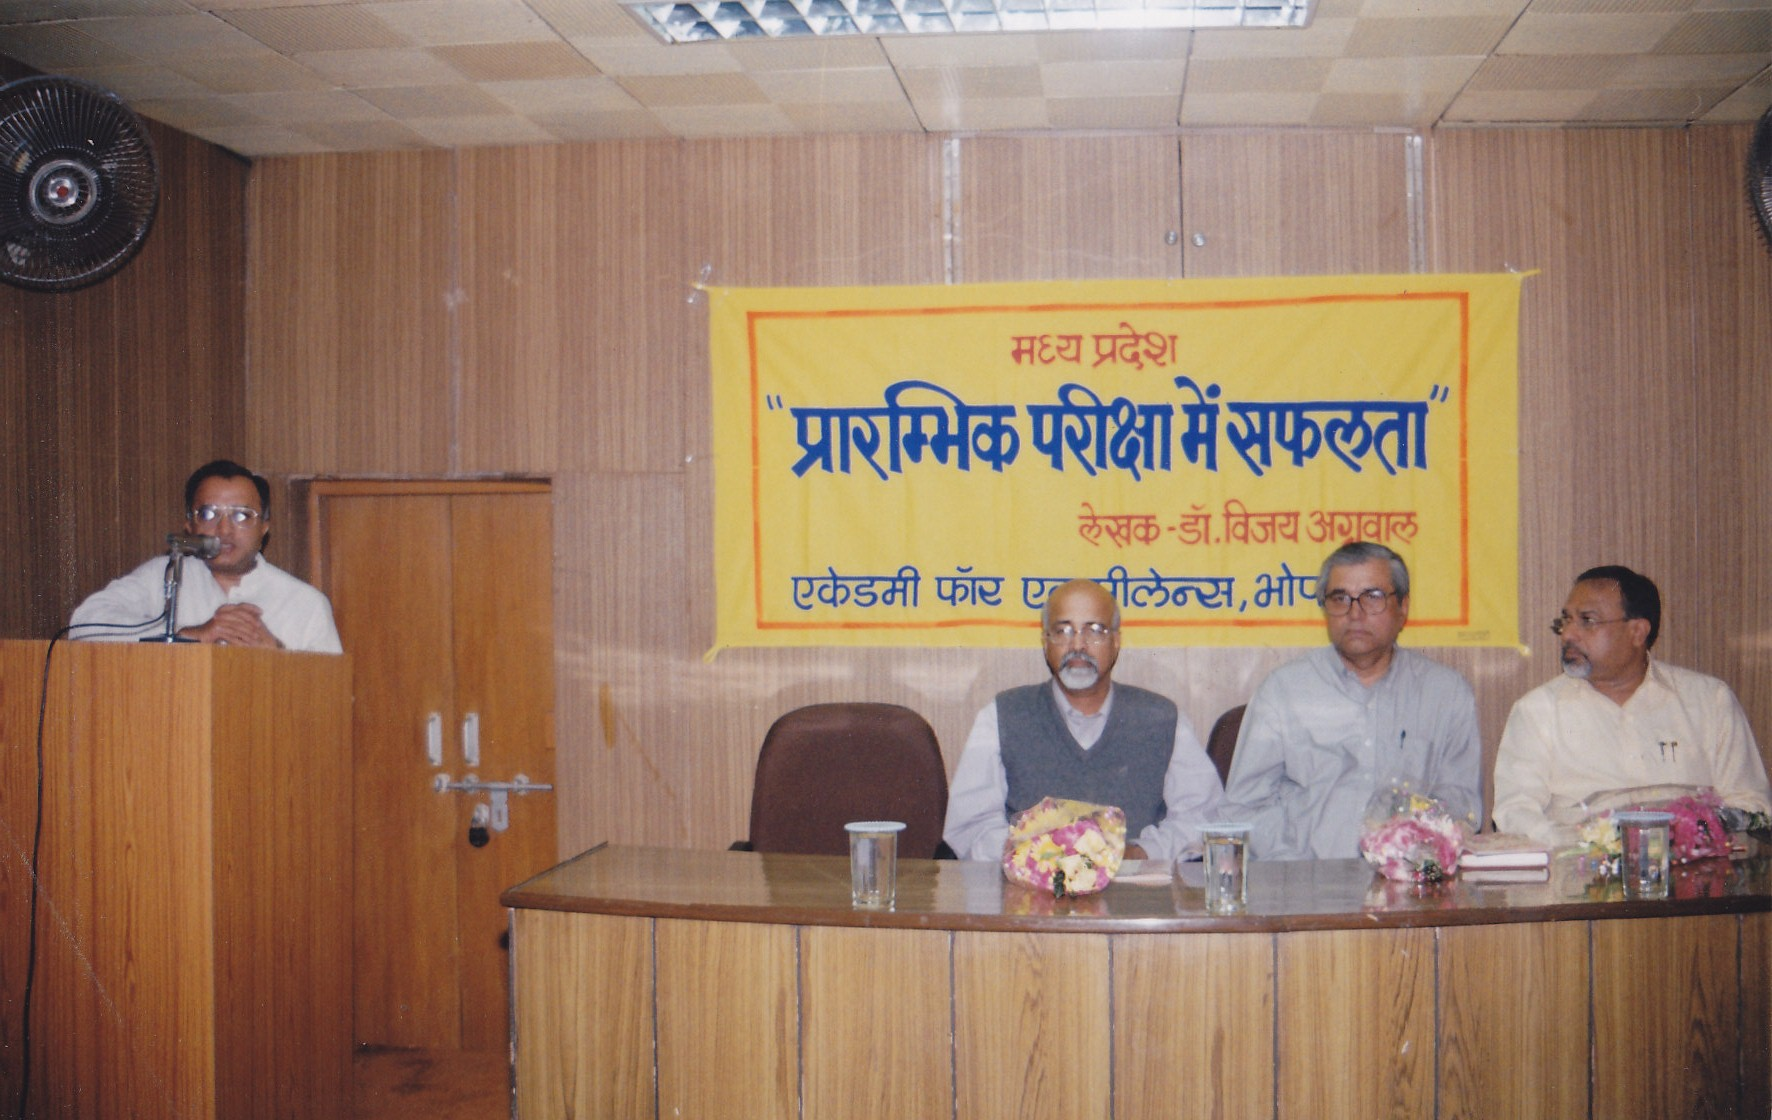 Addressing on the occasion of his book release